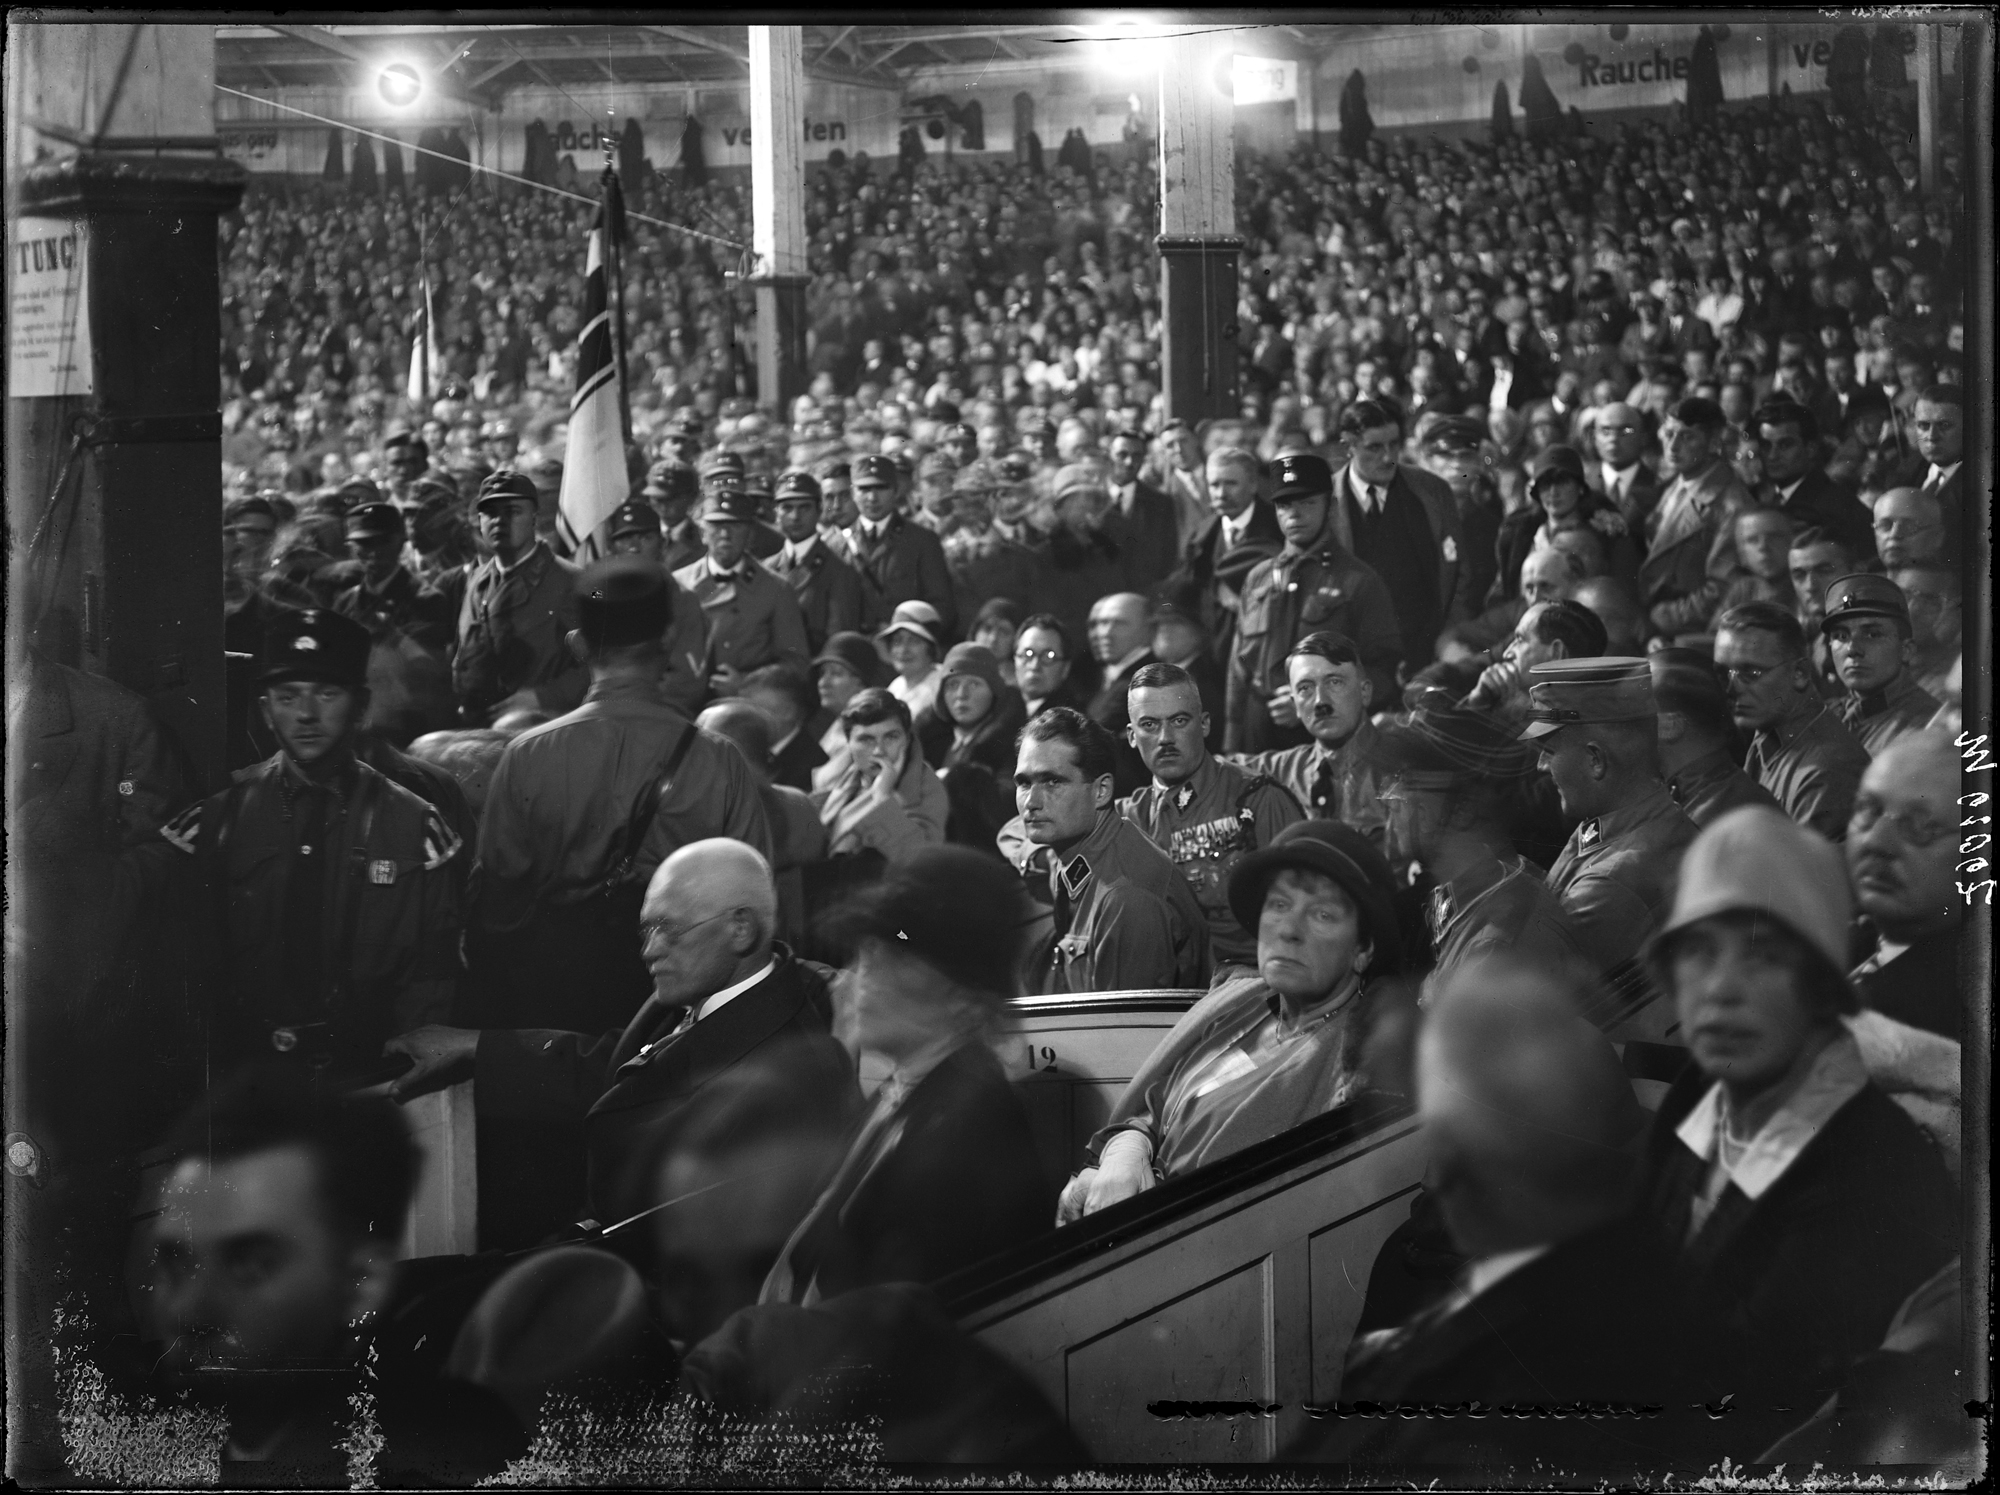 Adolf Hitler, Rudolf Hess, Pfeffer von Salomon and Elsa Bruckmann at the Zirkus Krone in Munich during a rally